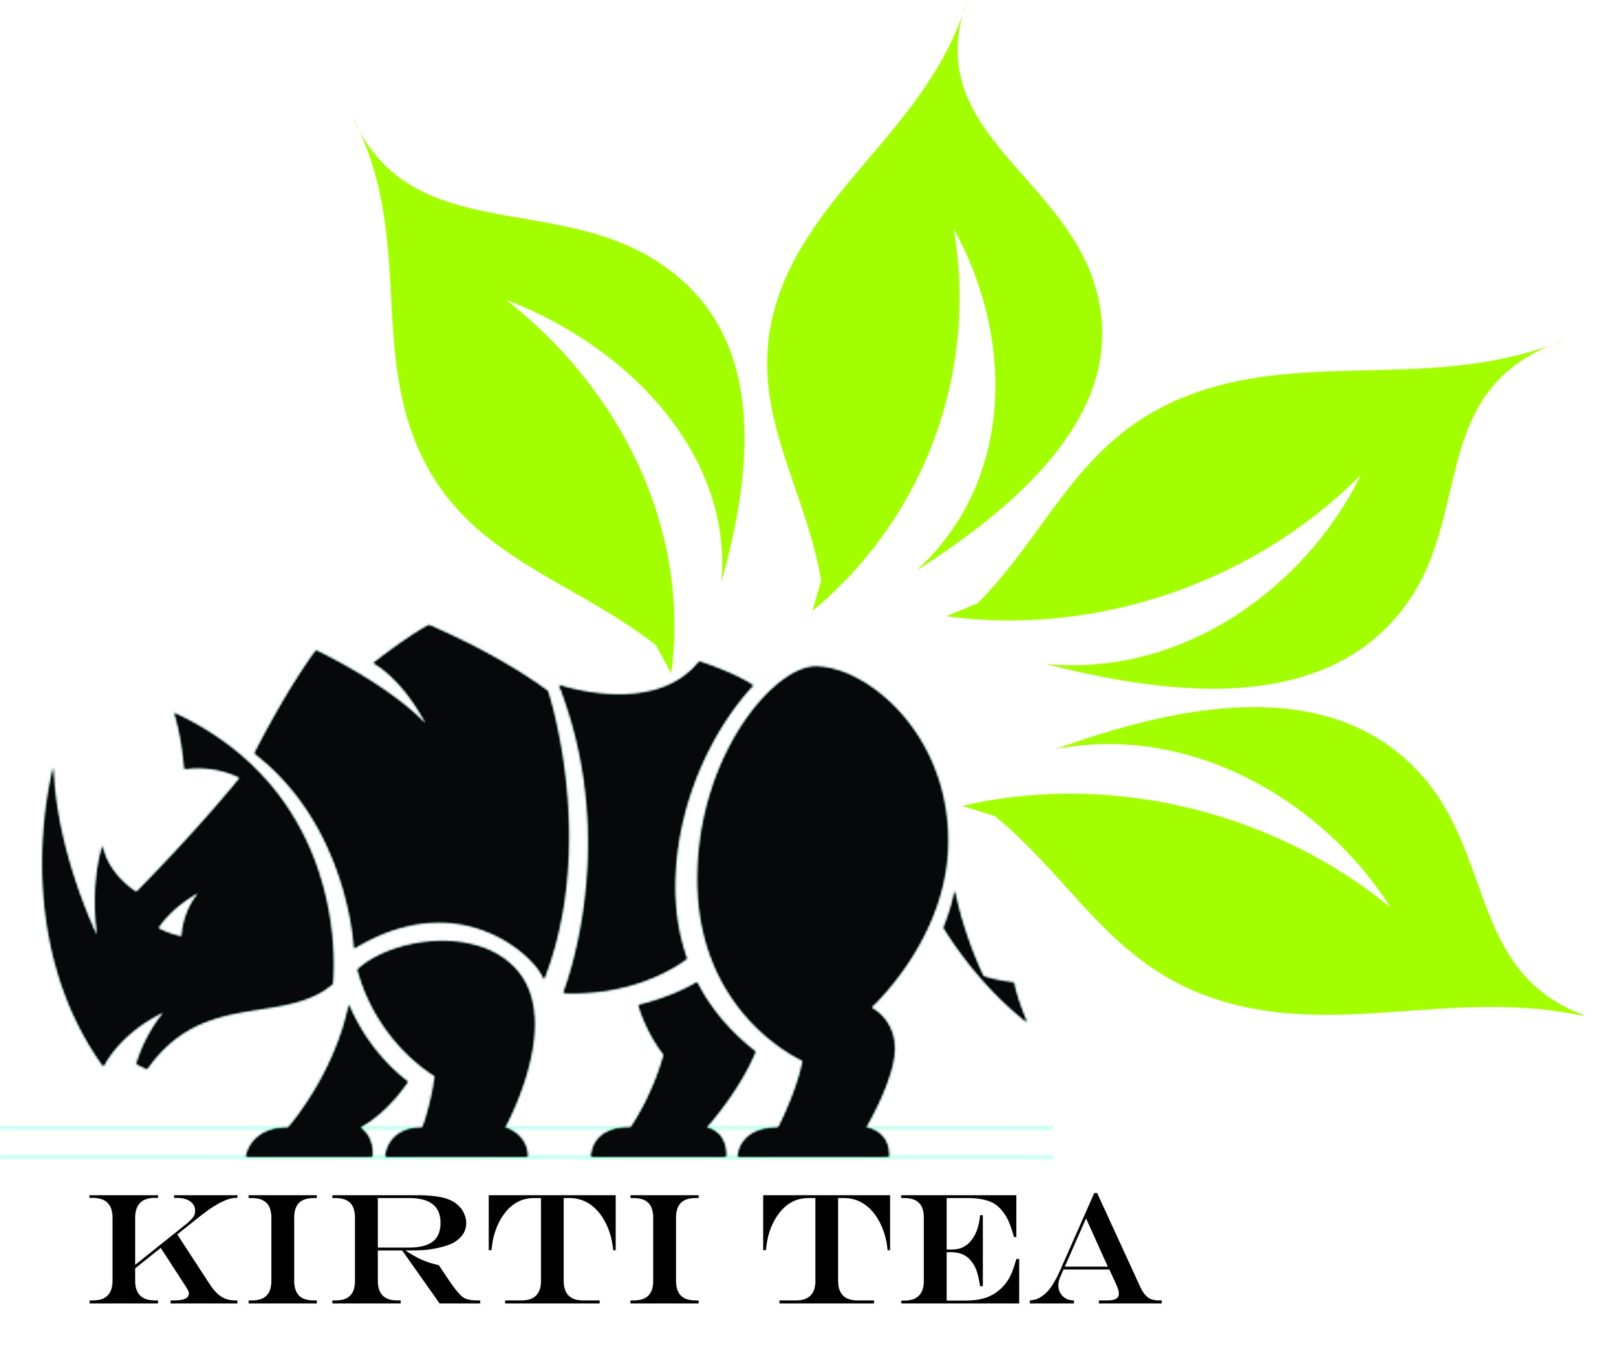 Kirti Tea Trading – Assam Tea – Manufacturers & Suppliers of Assam Chai, Assam Tea Wholesaler and Manufacturer,Direct From Assam Tea Garden, Assam Loose Tea, Assam CTC Tea, Assam Black Tea, Assam Tea, Green Tea, Orthodox Tea